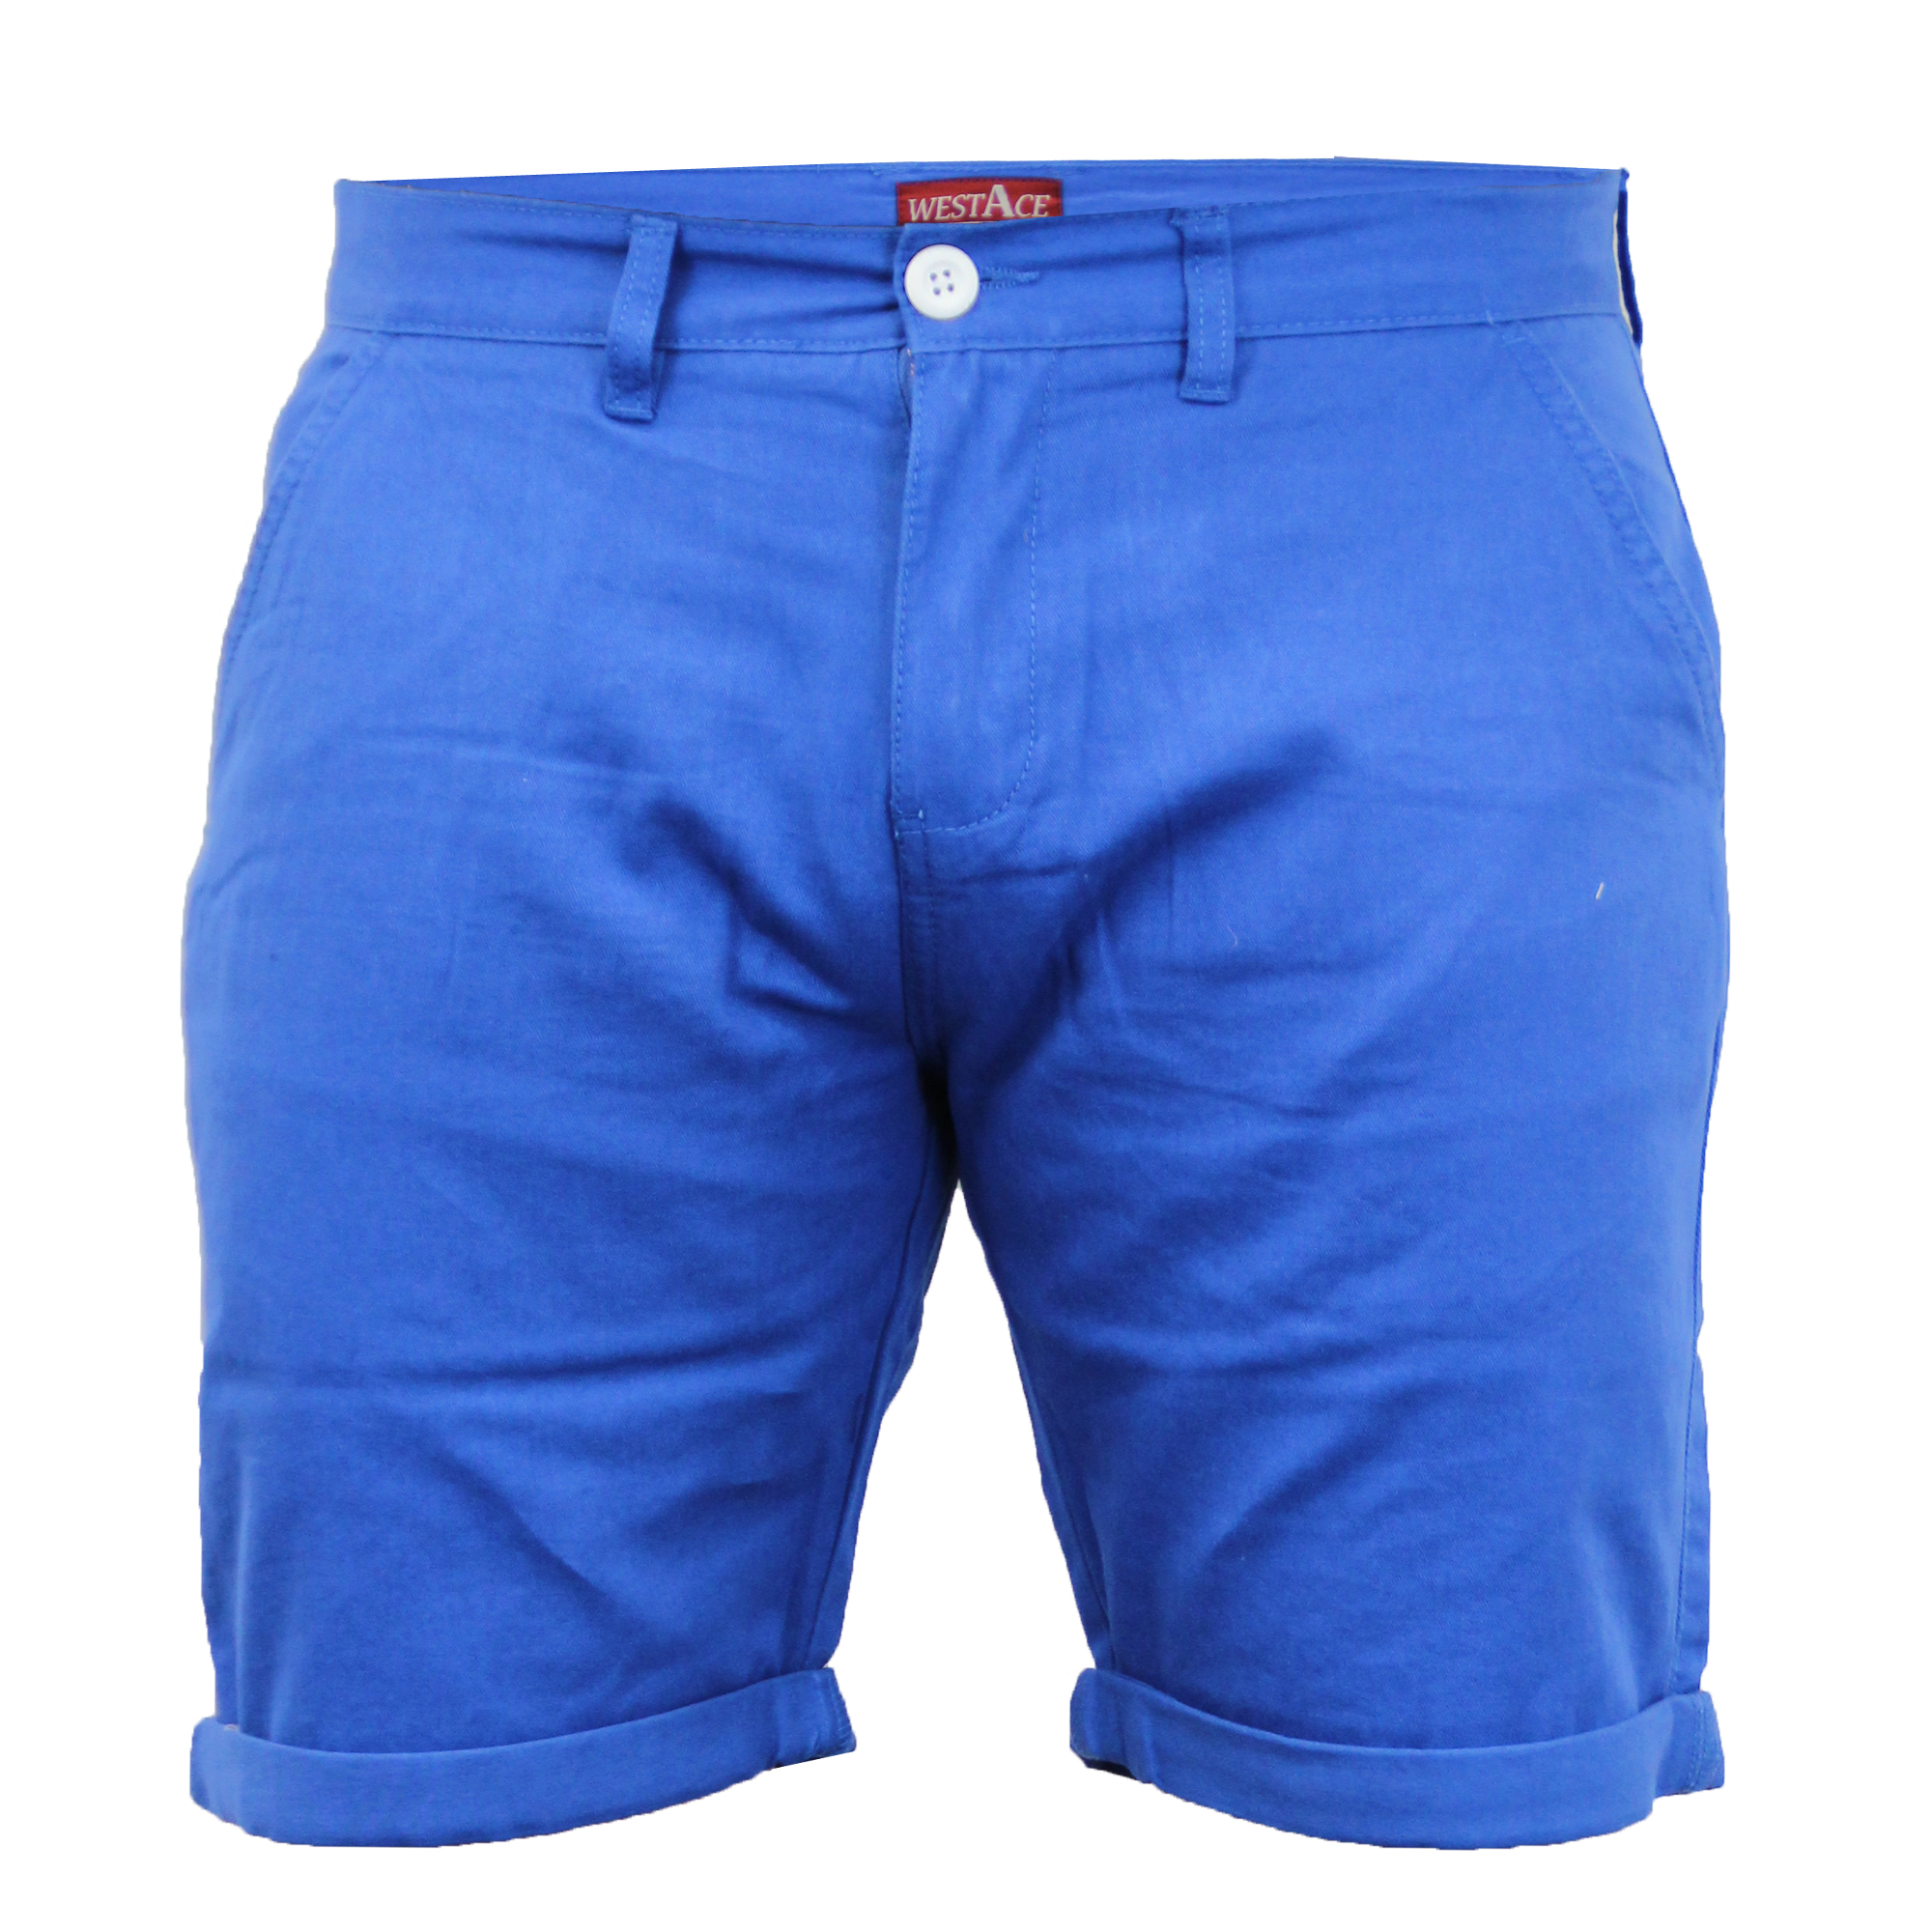 Mens-Chino-Shorts-Threadbare-Pants-Westace-Stallion-Knee-Length-Roll-Up-Summer thumbnail 47